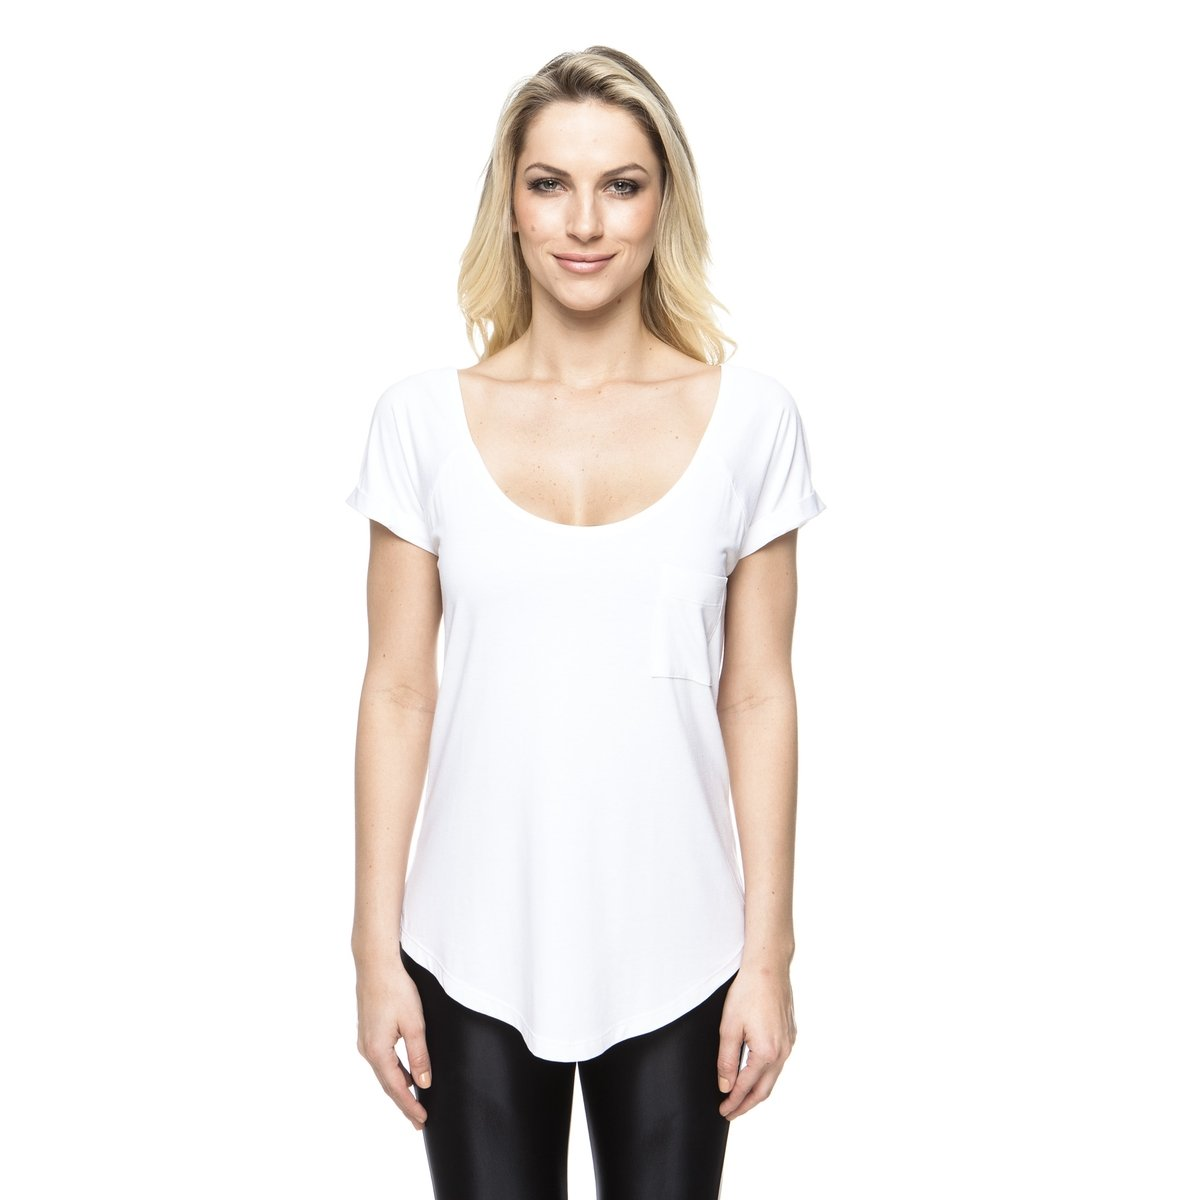 Pocket Pocket Up New New Vis Branco Camiseta Camiseta Vis Branco Up 0xxtf